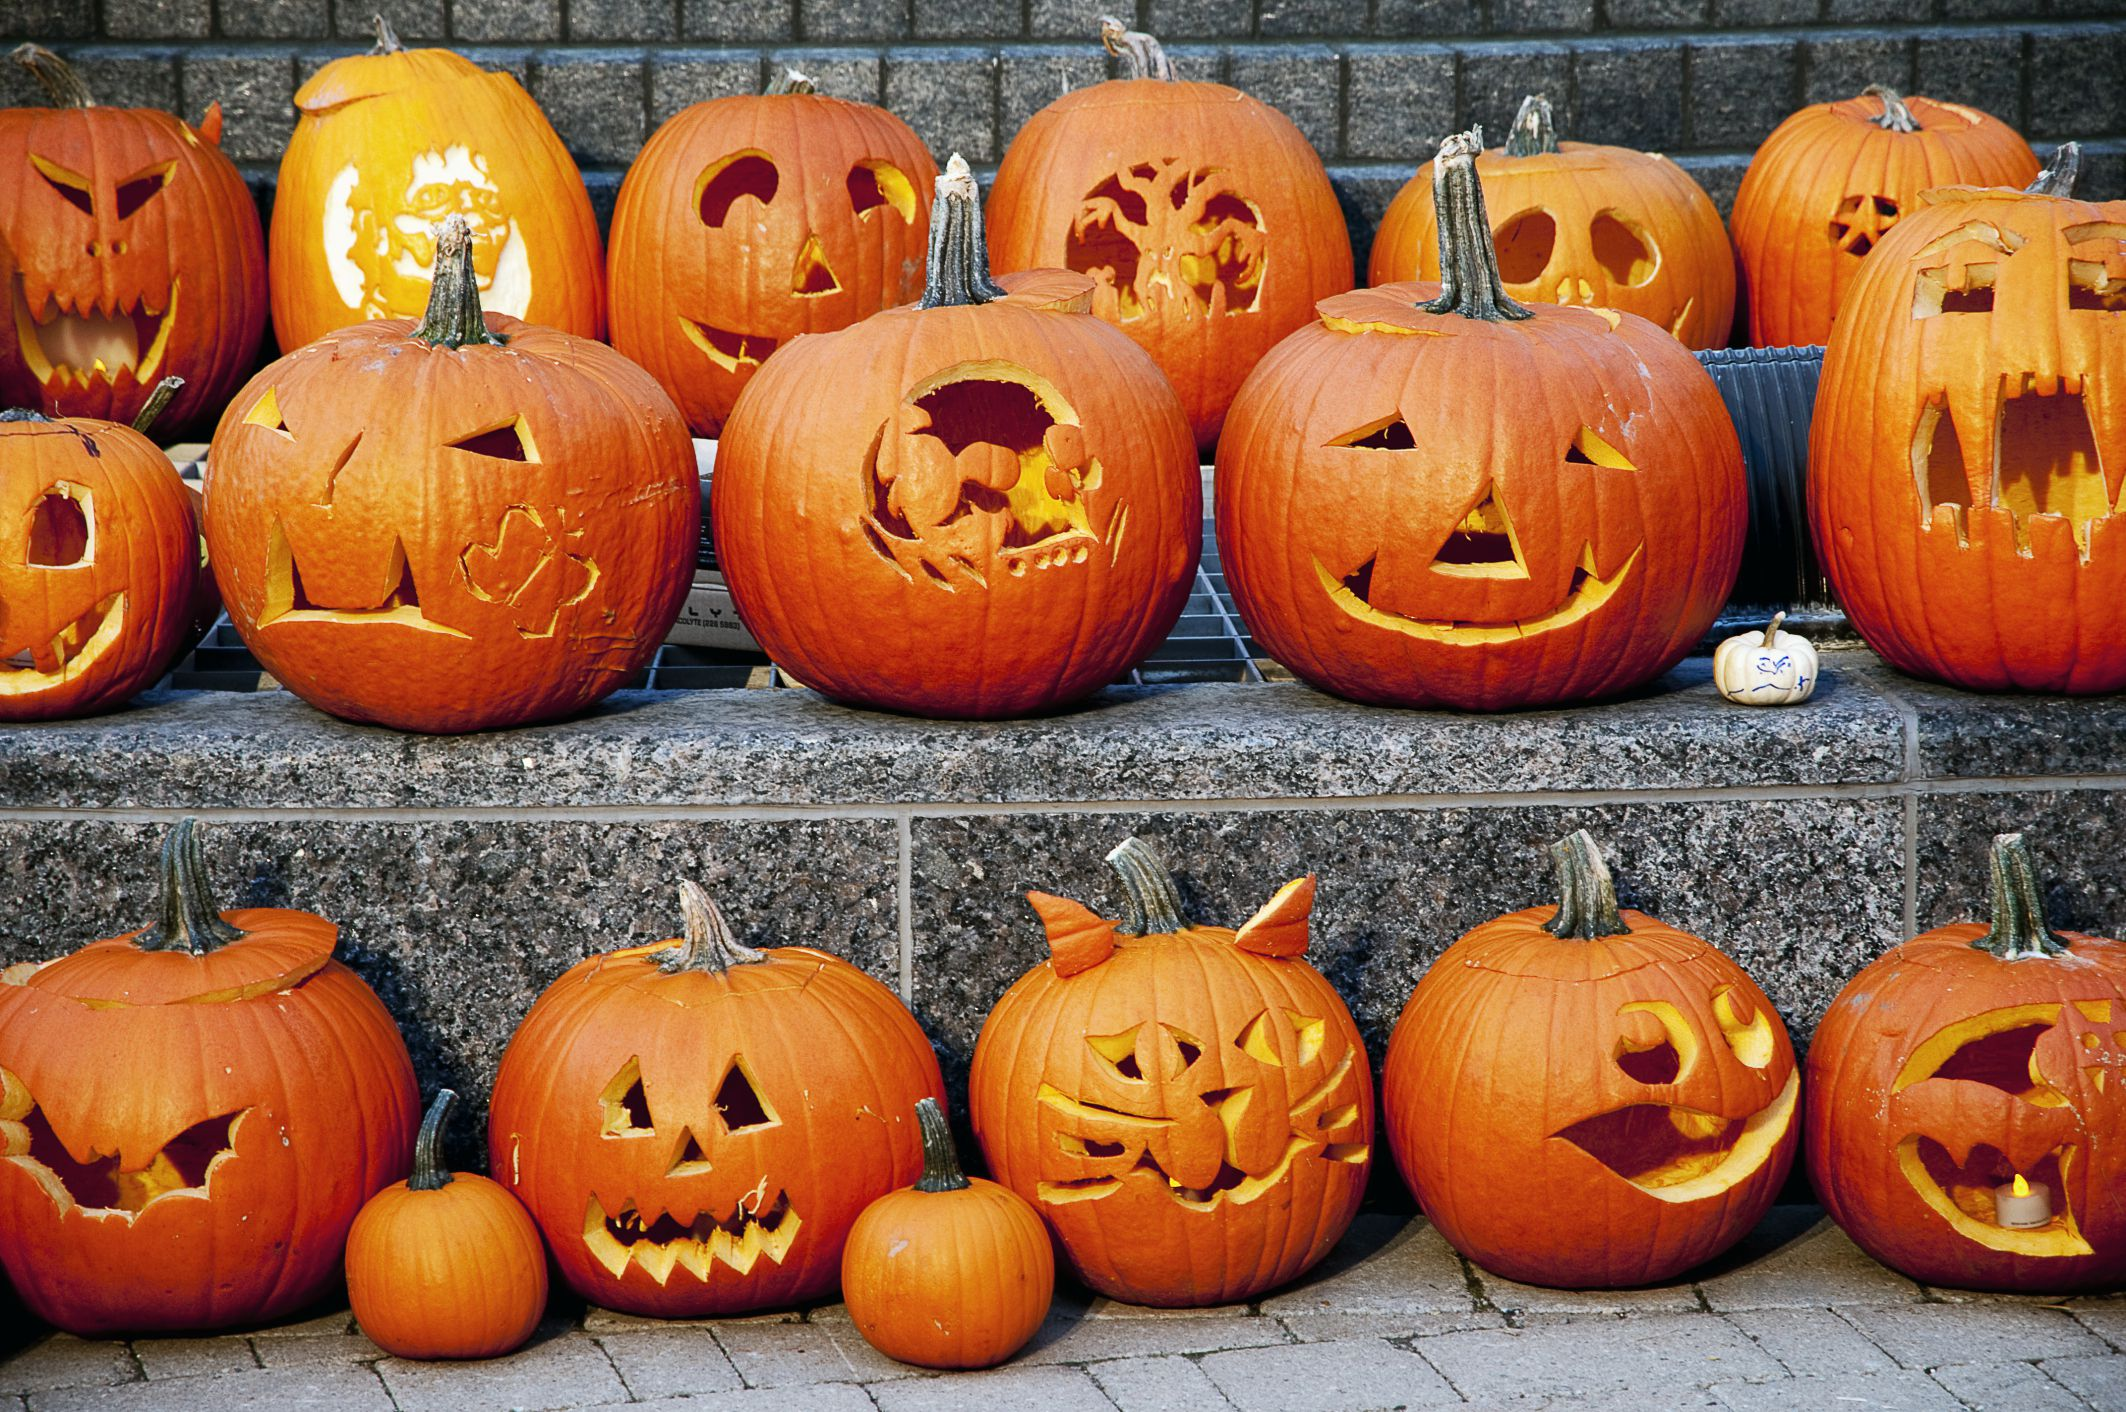 How To Preserve A Carved Halloween Jack O Lantern